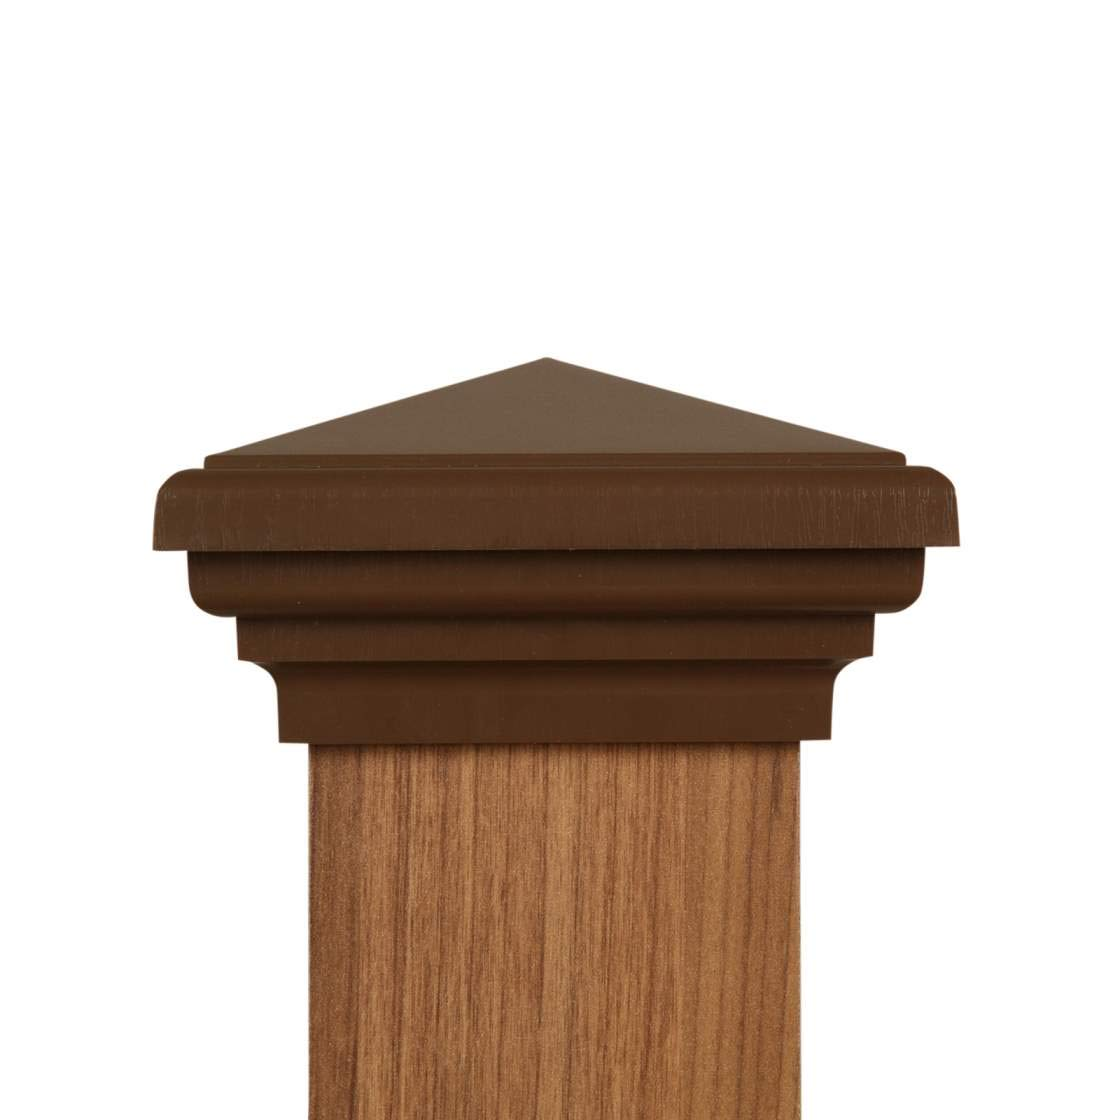 4x4 Post Cap (3.5'' x 3.5'') - Brown Pyramid Top (Case of 12) - With 10 Year Warranty